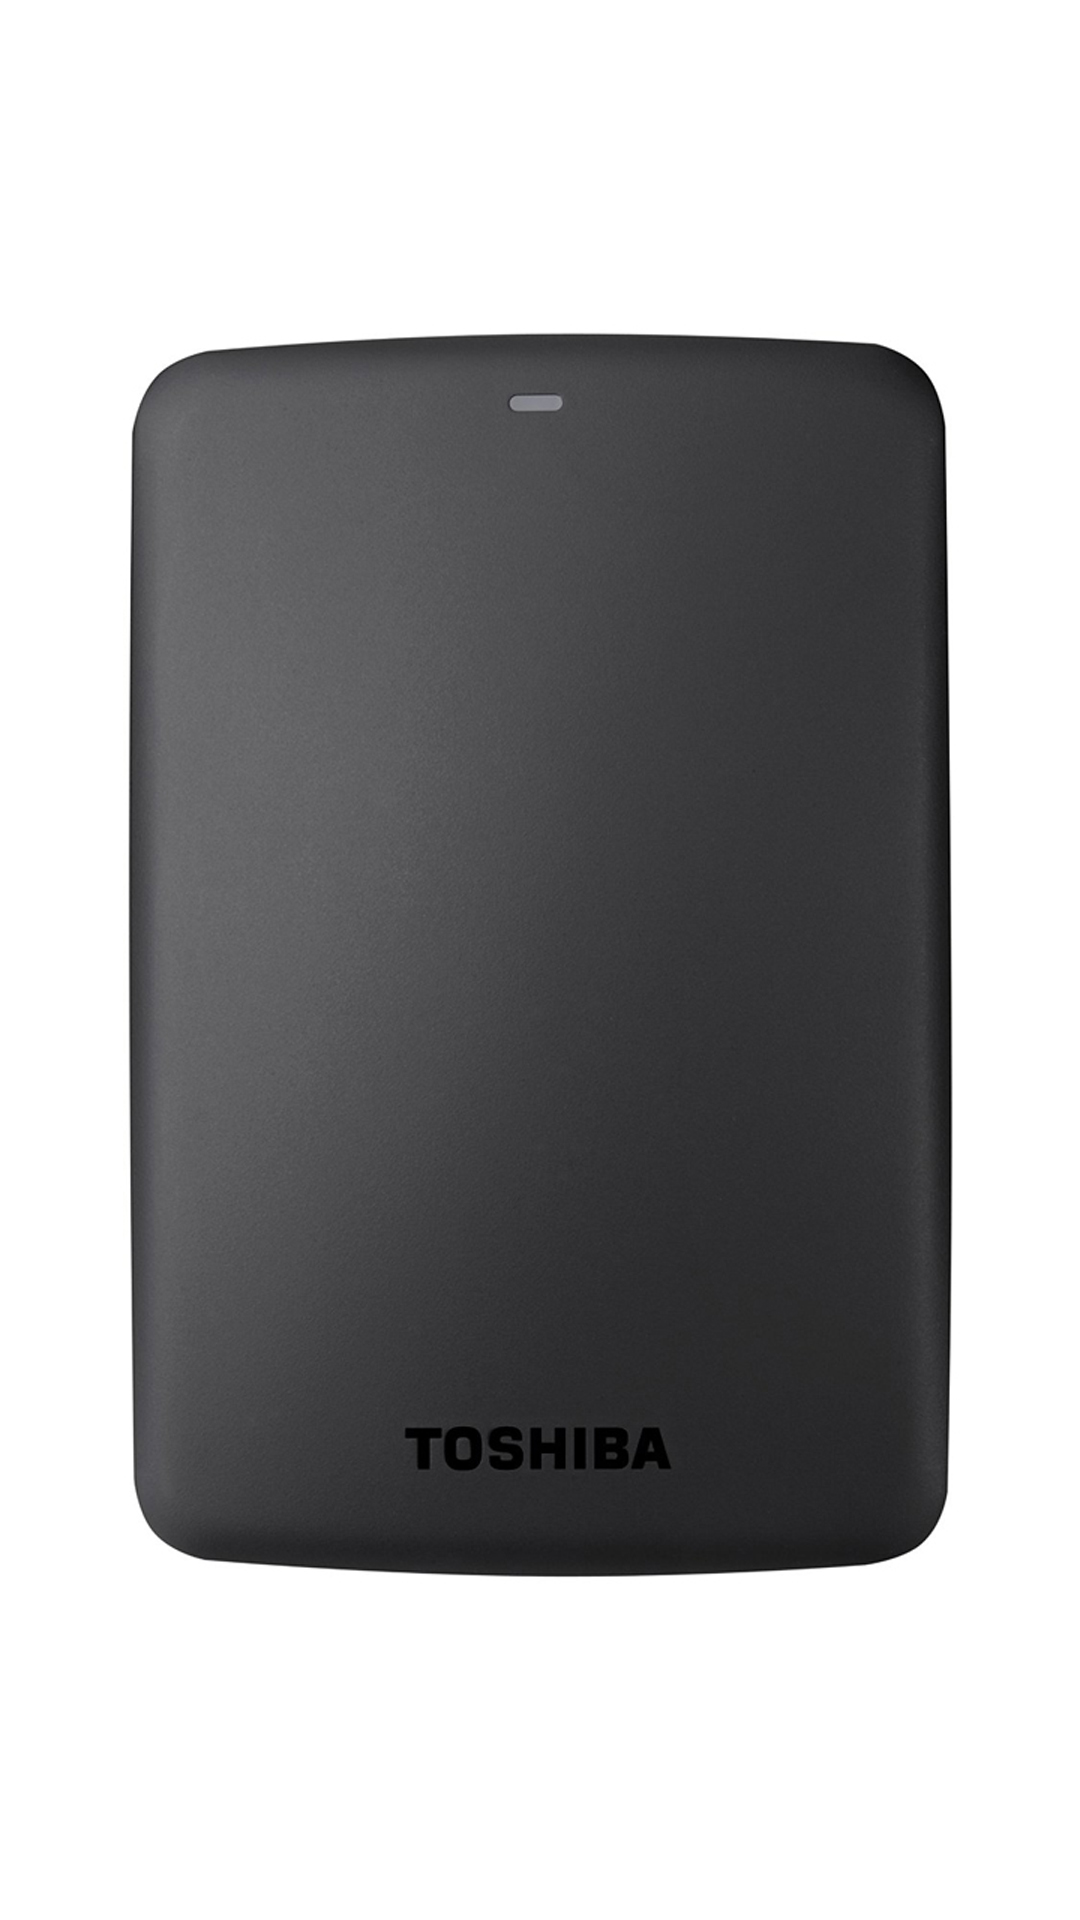 Toshiba Canvio Basics (HDTB320EK3CA) 2 TB Portable External Hard Drive (Black)